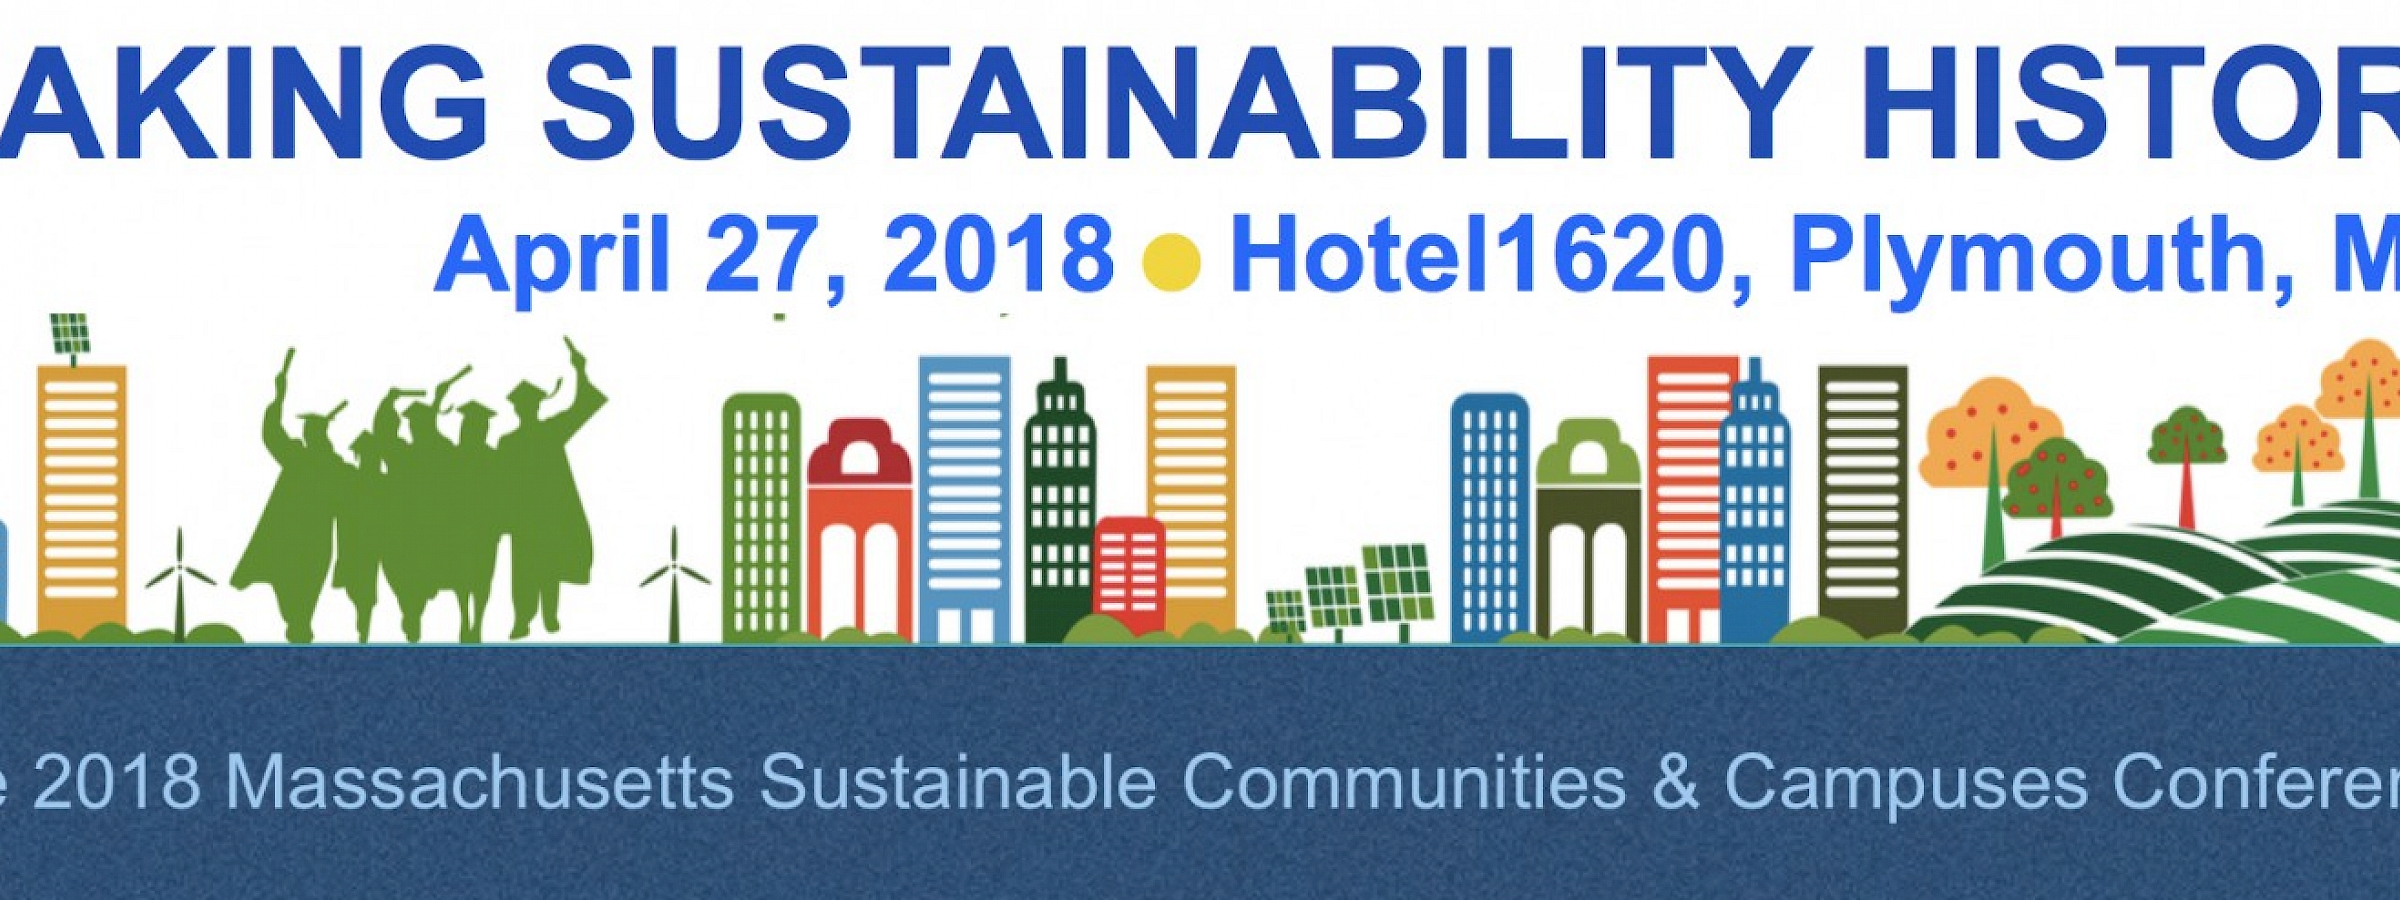 Making Sustainable History - The 2018 Massachusetts Sustainable Communities & Campuses Conference